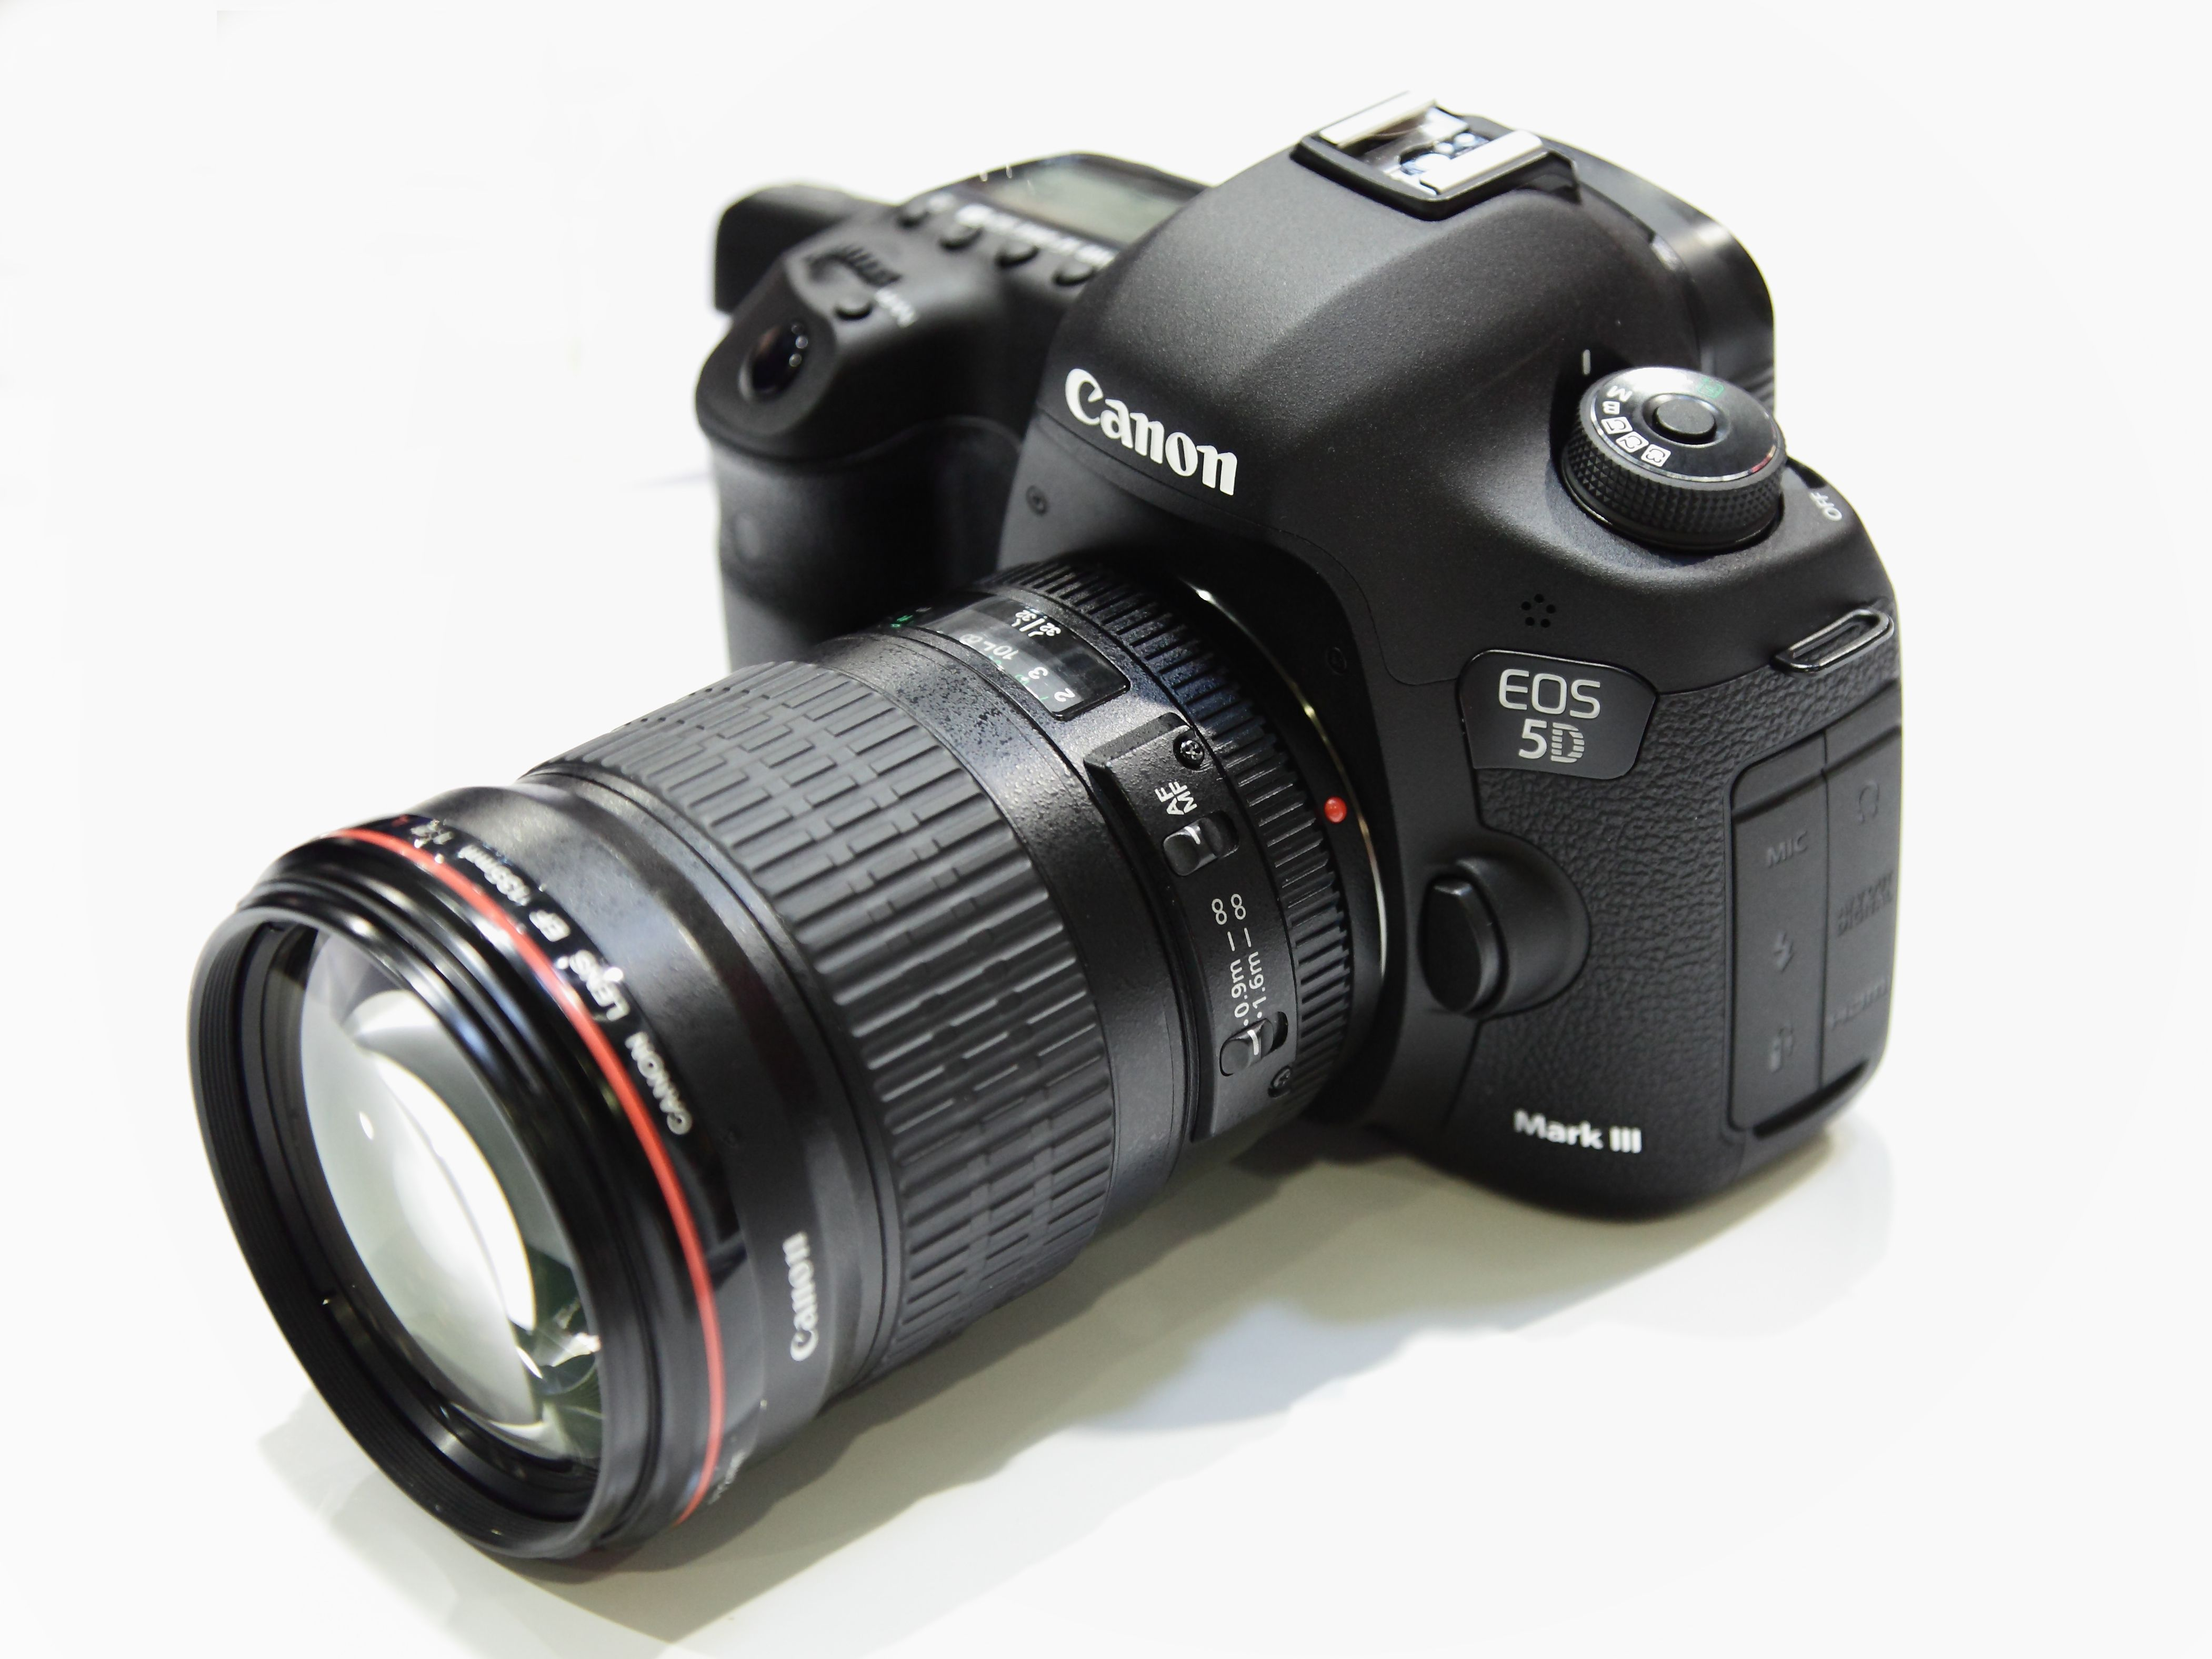 The Canon EOS 5D MarkIII is next on my list of gear to get. Love ...